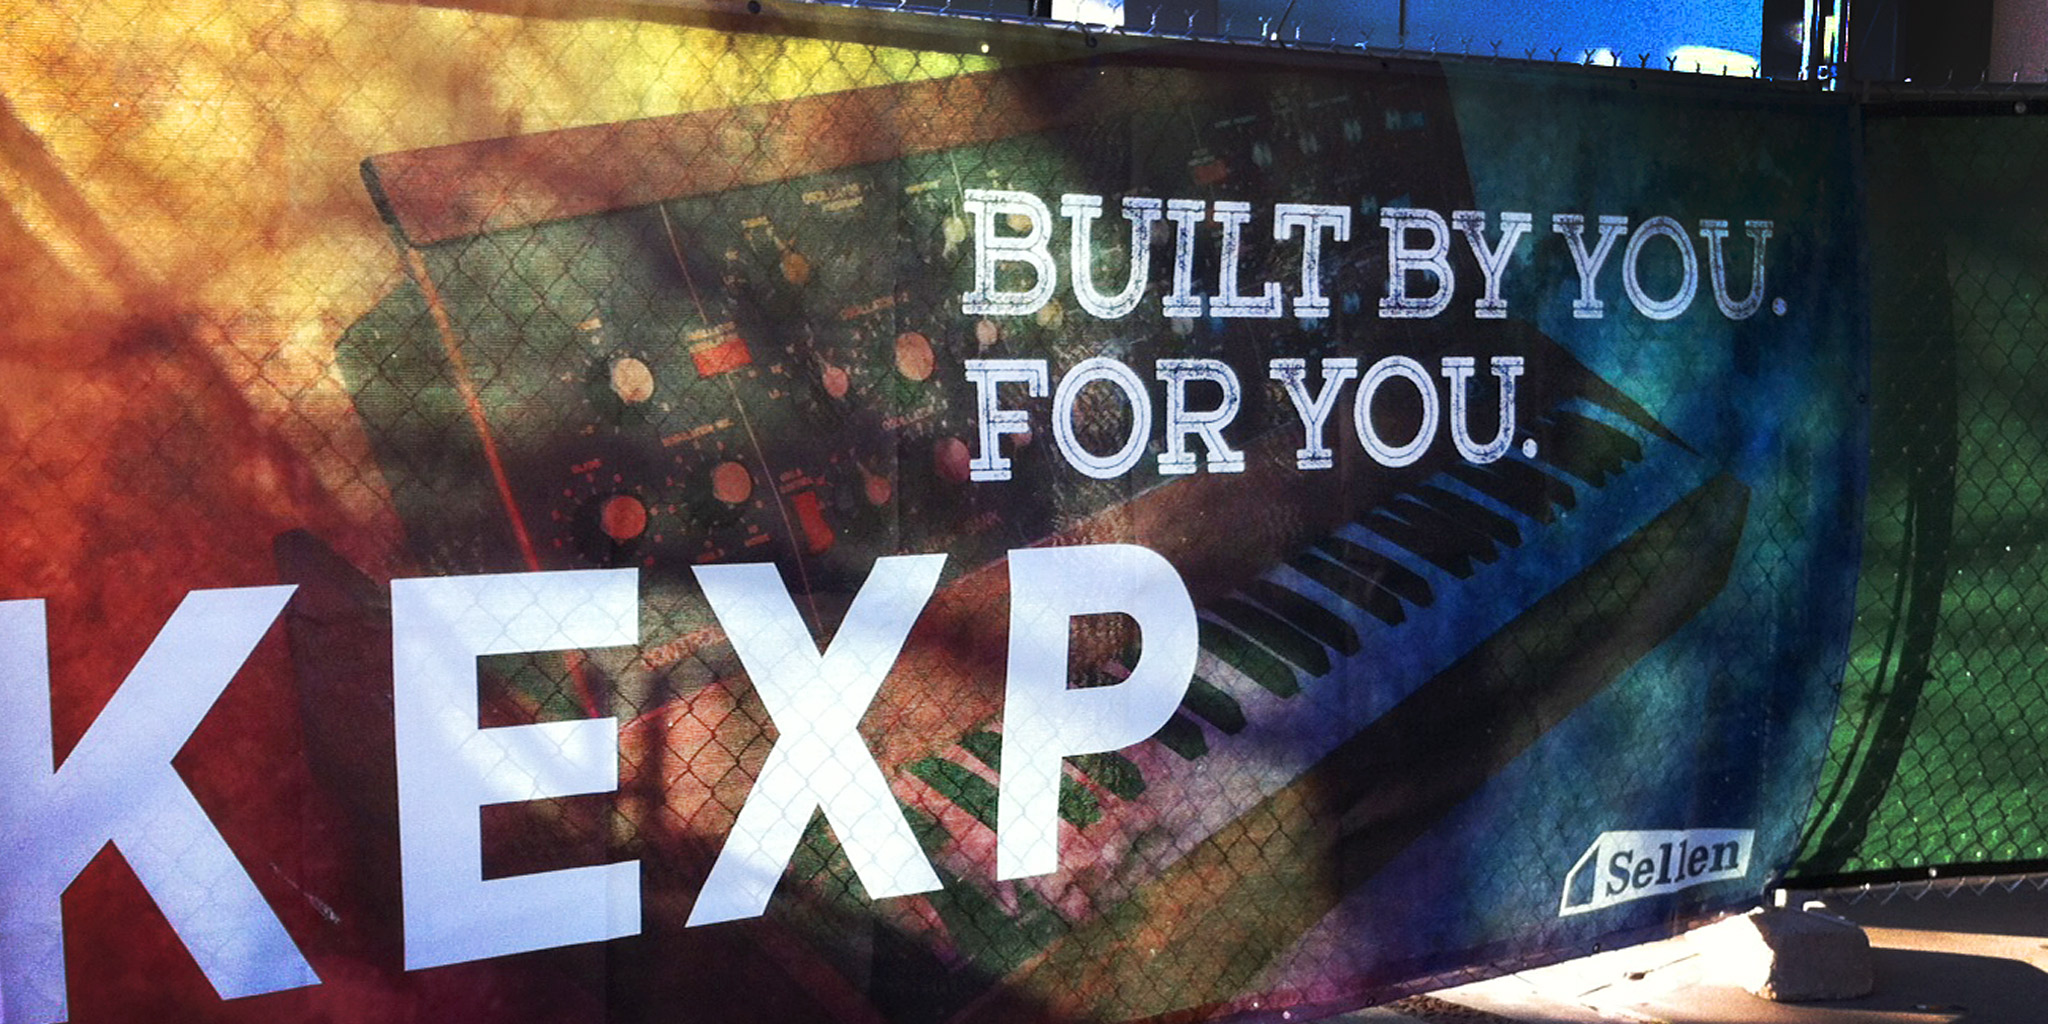 ENVIRONMENTAL  KEXP 90.3  As Seattle's beloved alterative music radio station needed to grow and move locations, they neededimpactful and exciting visuals to line the construction walls. We wanted to convey the energy and relevance that all have come to know about KEXP while leveraging their established motto and tagline. We used live entertainment images, textural layers and hip musical icons to blend together a narrative that spoke clearly to Seattle music lovers.